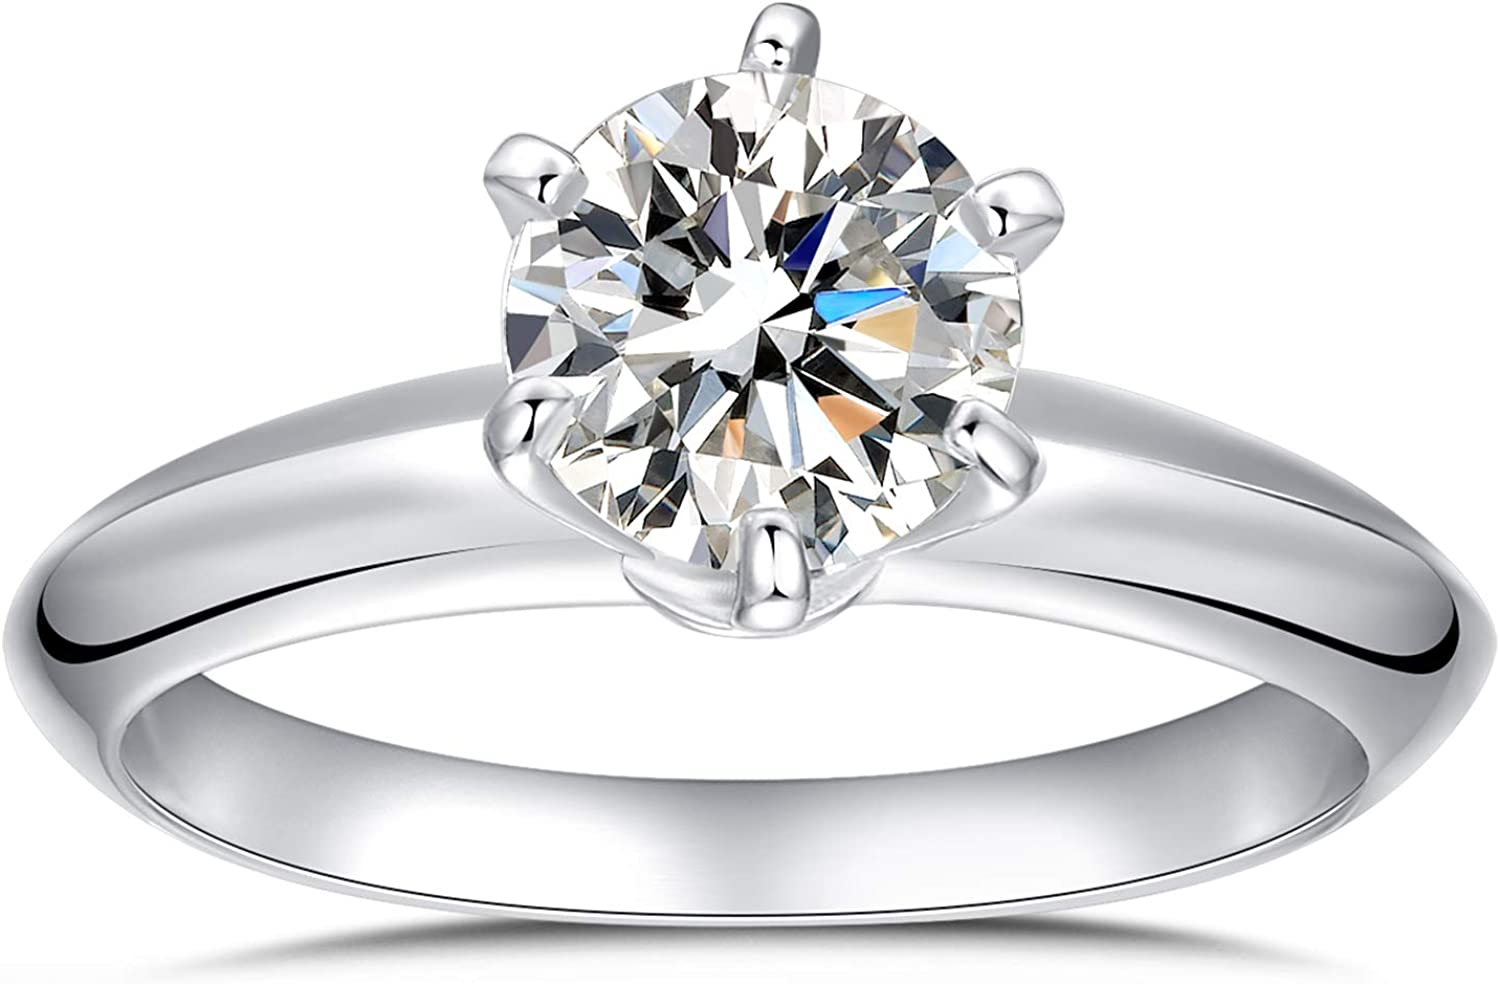 Platinum Plated Sterling Silver Round Cut 2ct Solitaire Engagement Ring 6 Prongs